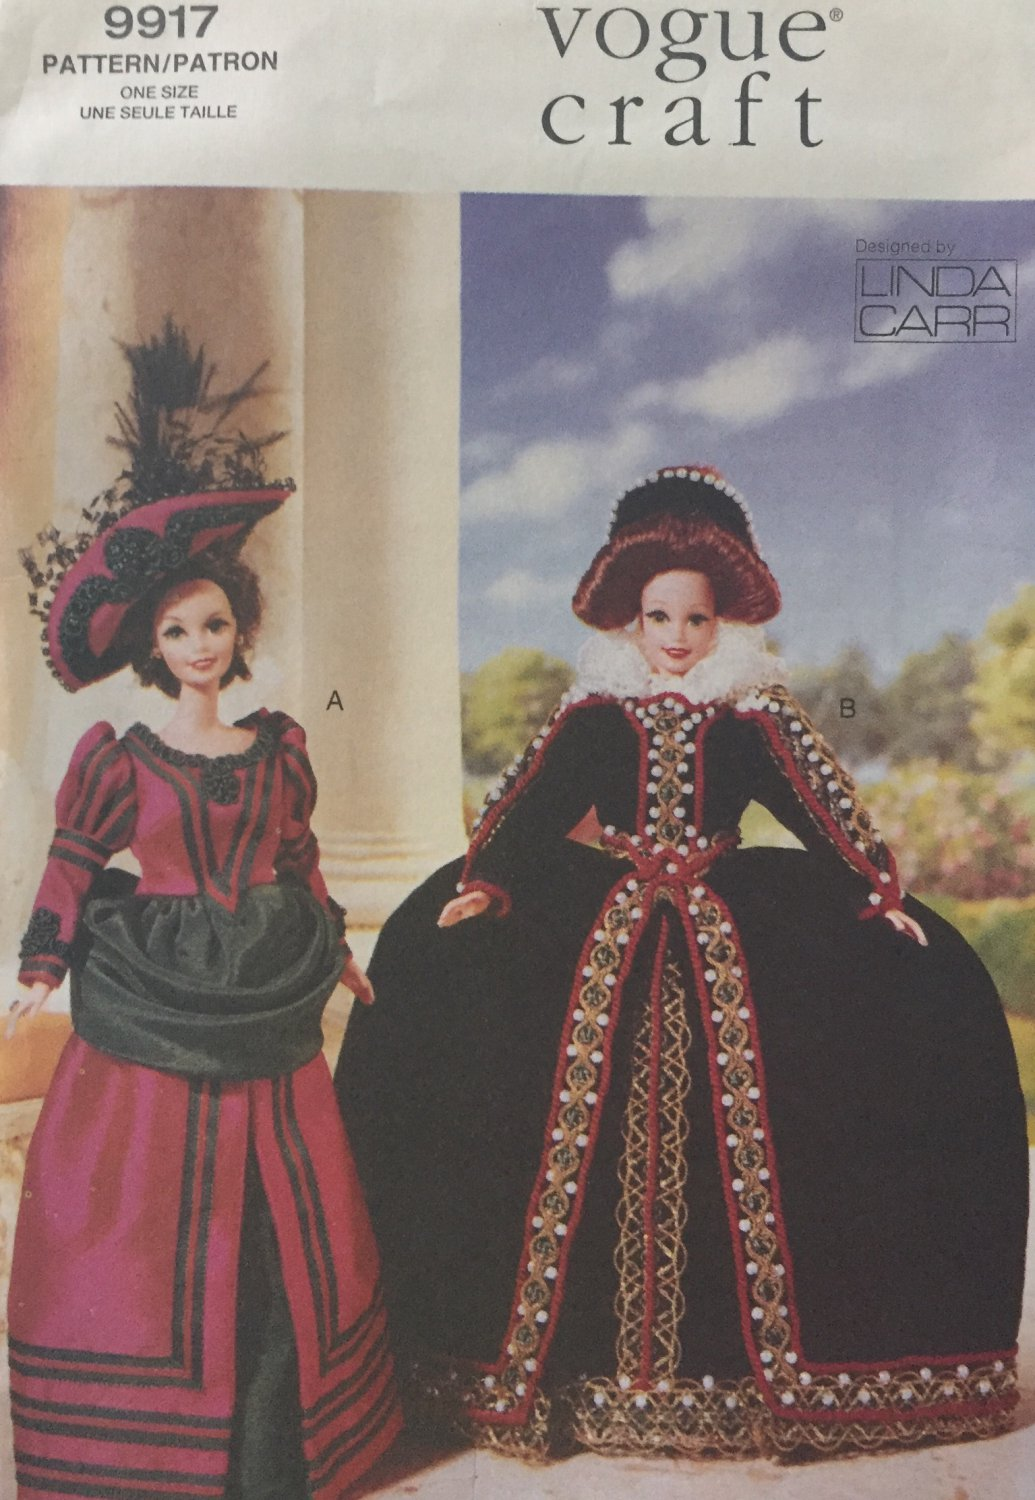 Vogue 9917 Historical Outfits 11 1/2 Inch Doll Clothes Sewing Pattern Linda Carr